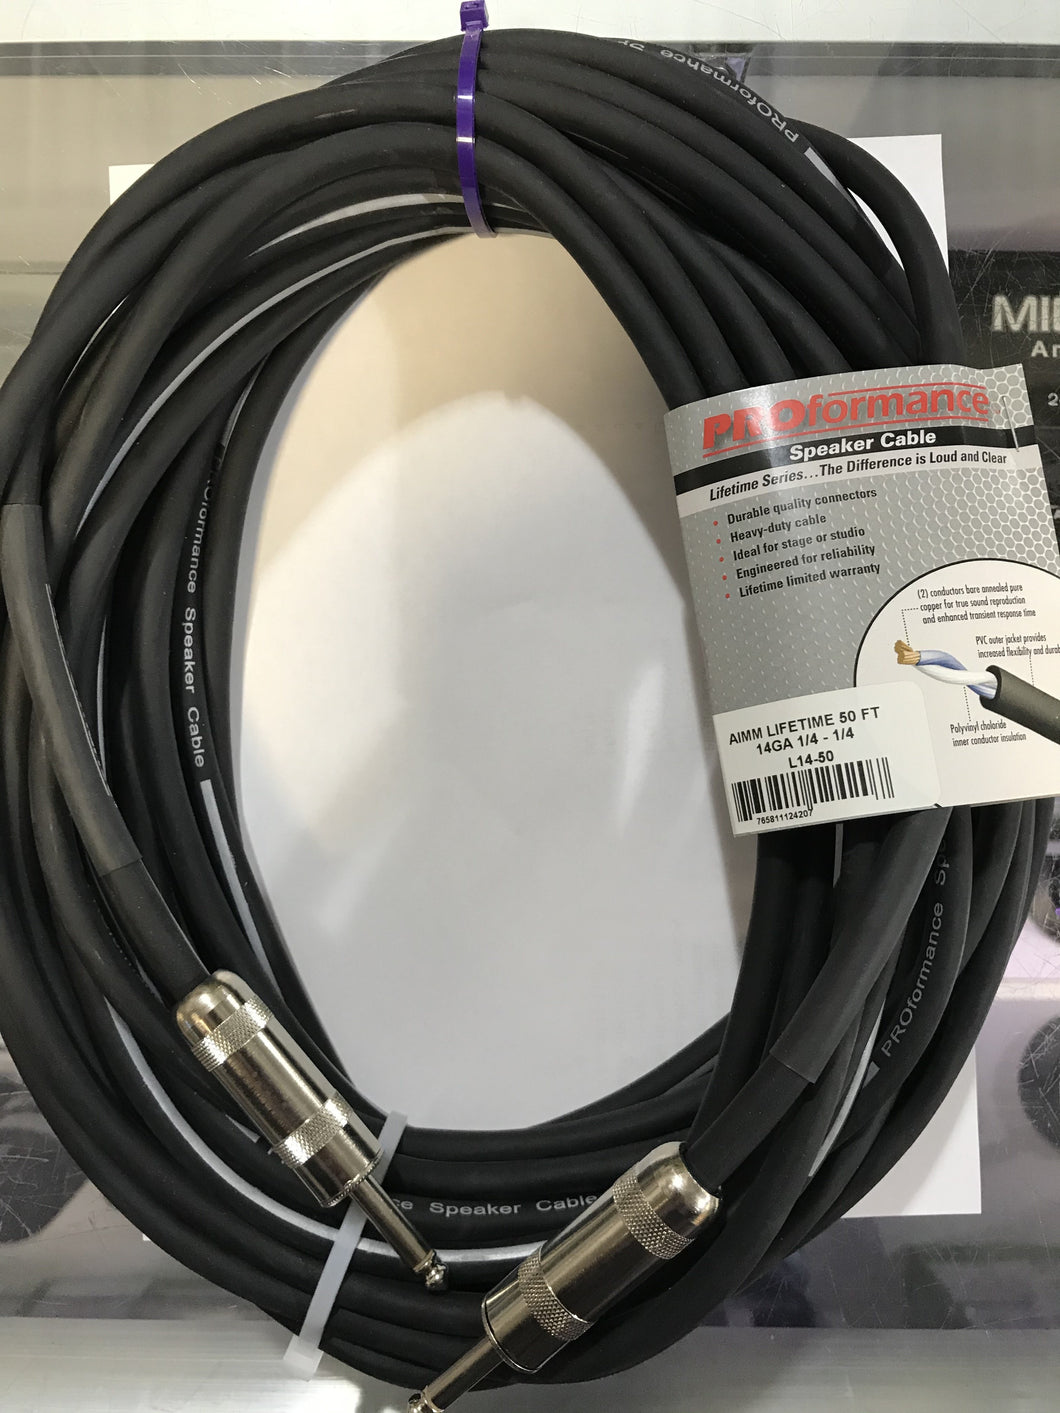 Spkr cable 050' 14g